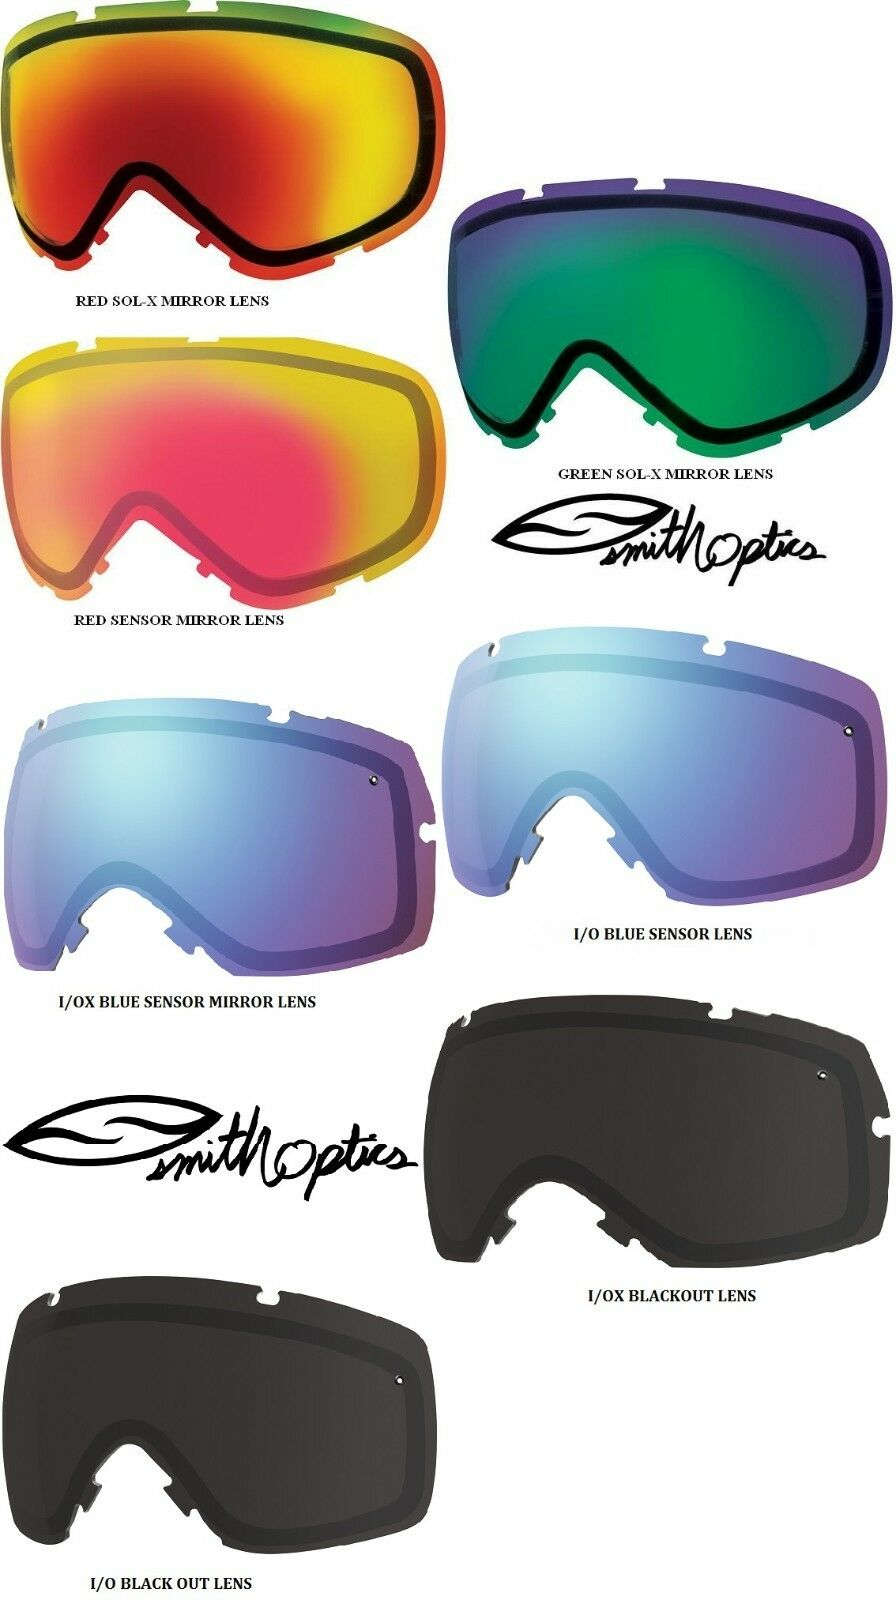 SMITH OPTICS REPLACEMENT LENS ONLY FOR I O AND I OX GOGGLES - NEW, Fits All